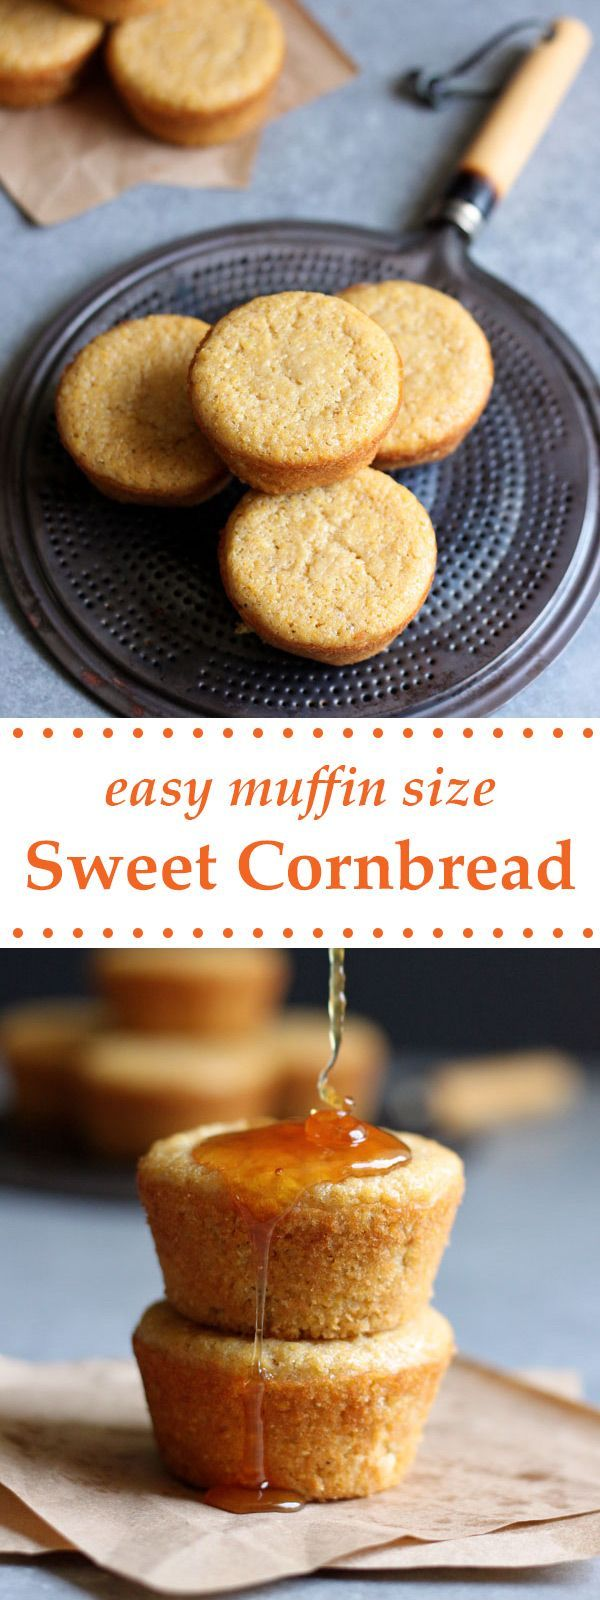 This easy sweet cornbread recipe is the perfect accompaniment for all your summer backyard barbecues, baked in muffin tins for individual size servings.